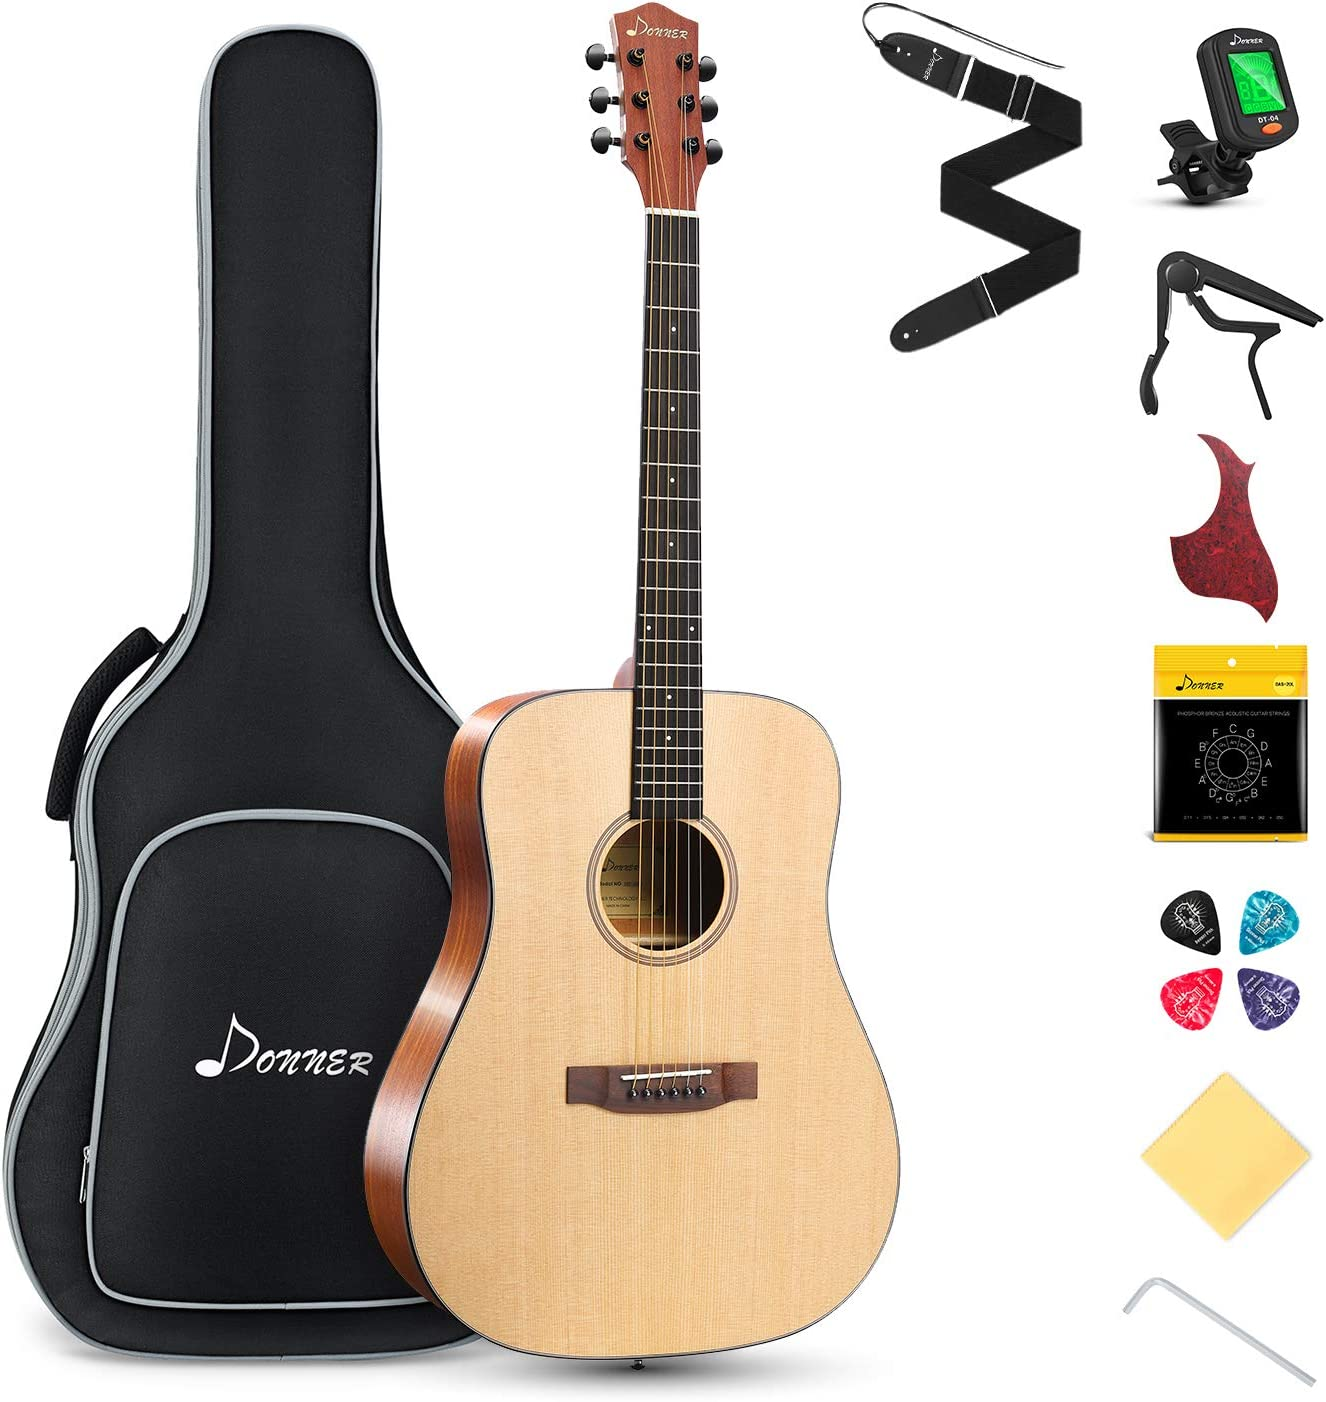 Donner Acoustic Guitar for Beginner Adult specialty shop Size Dreadnought specialty shop Full